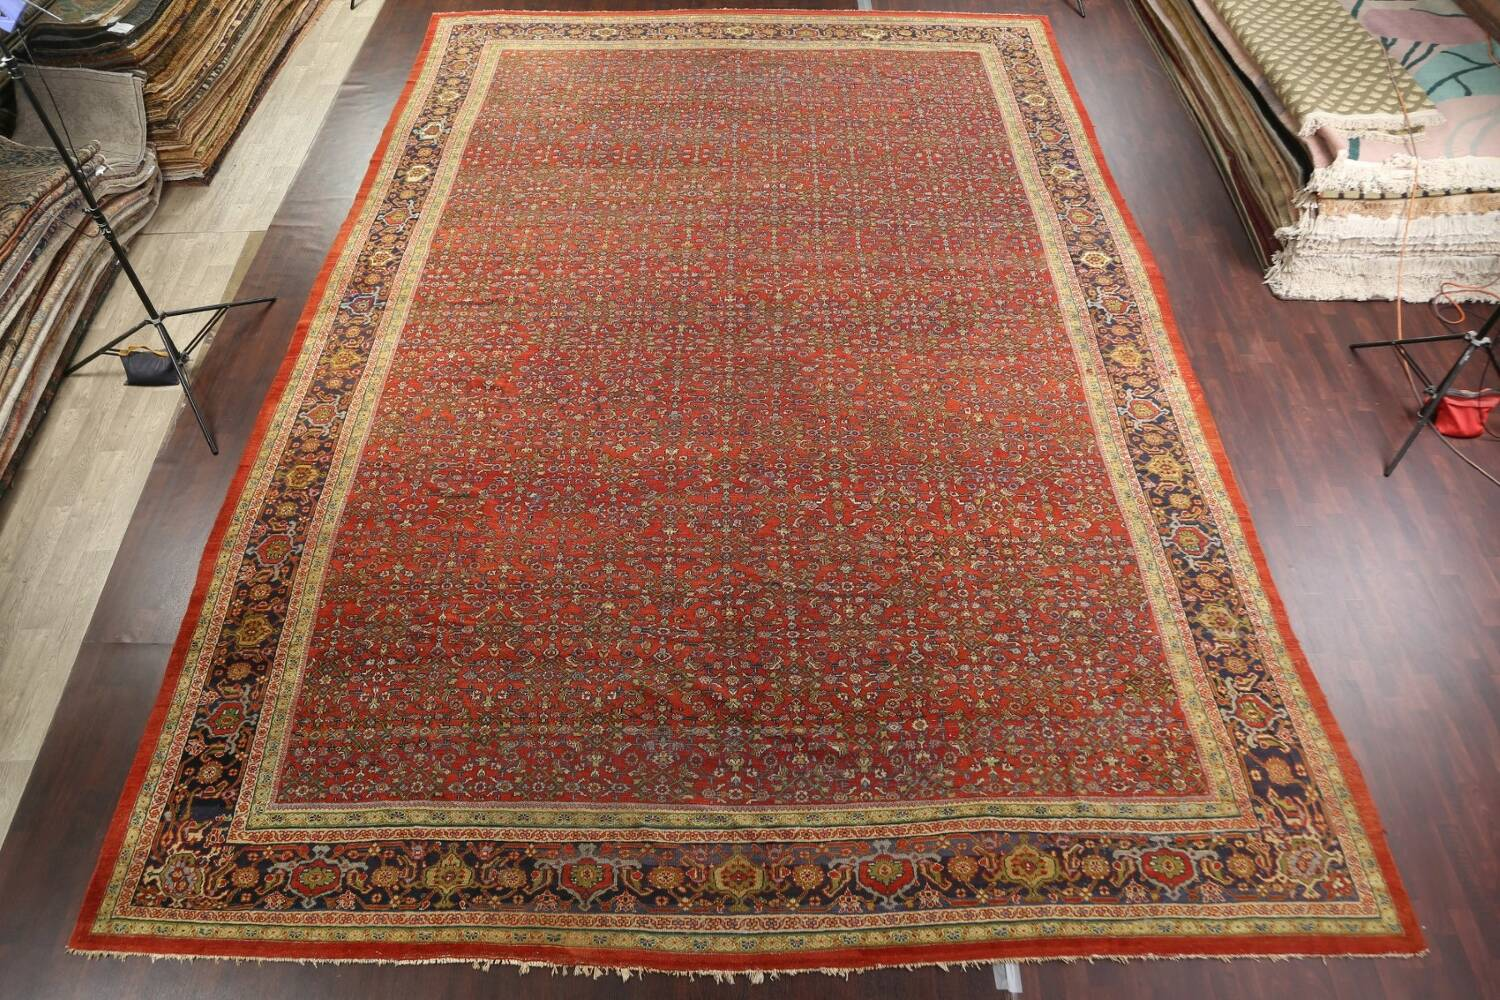 Pre-1900 Antique Vegetable Dye Sultanabad Persian Rug 15x22 image 3